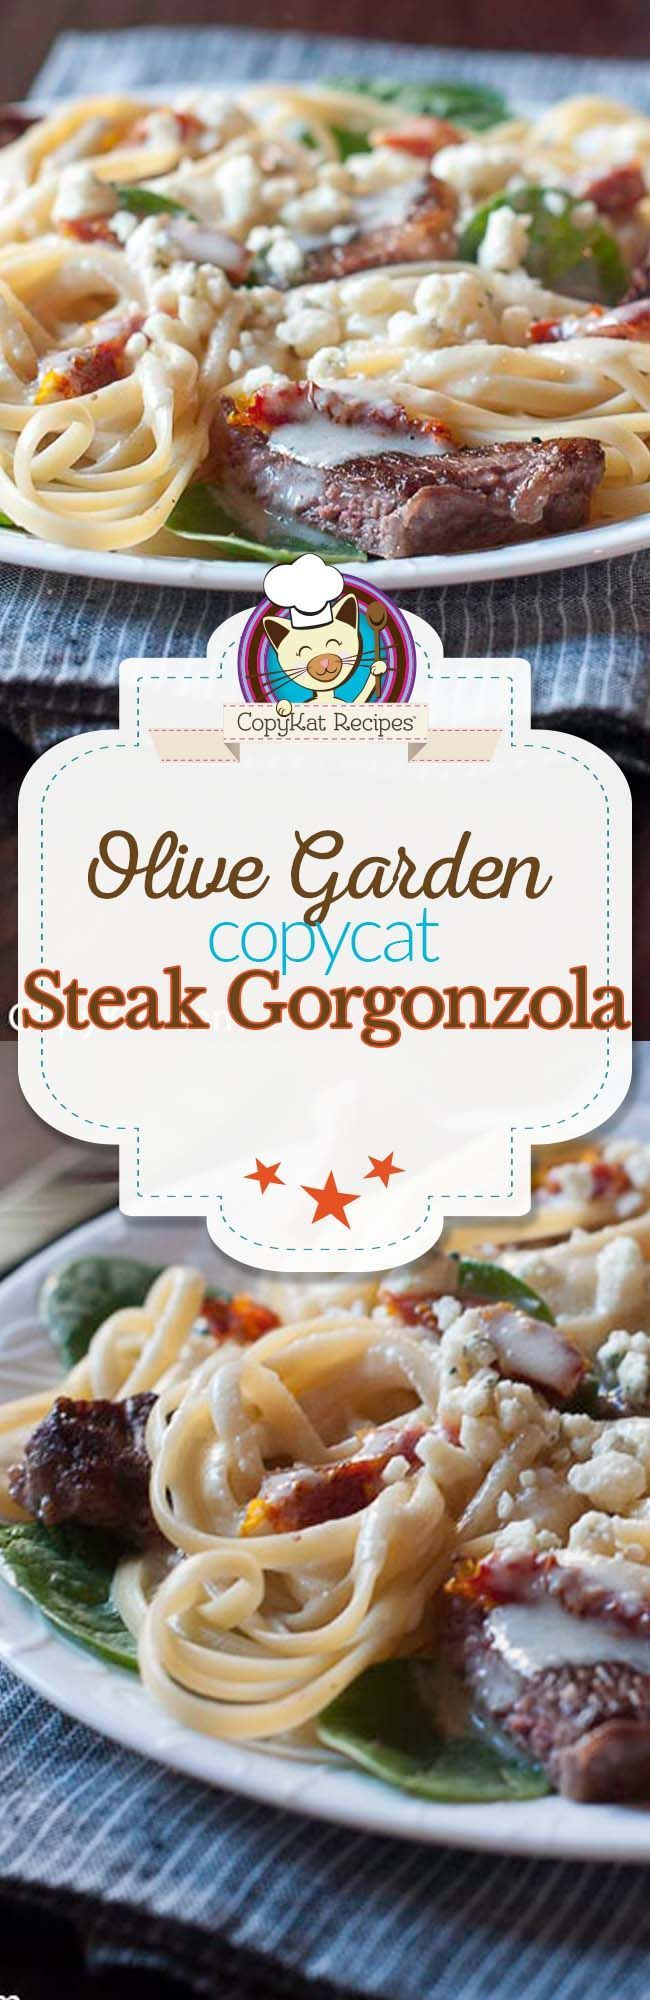 Make the Olive Garden Steak Gorgonzola Alfredo.  You will love this copycat recipe.